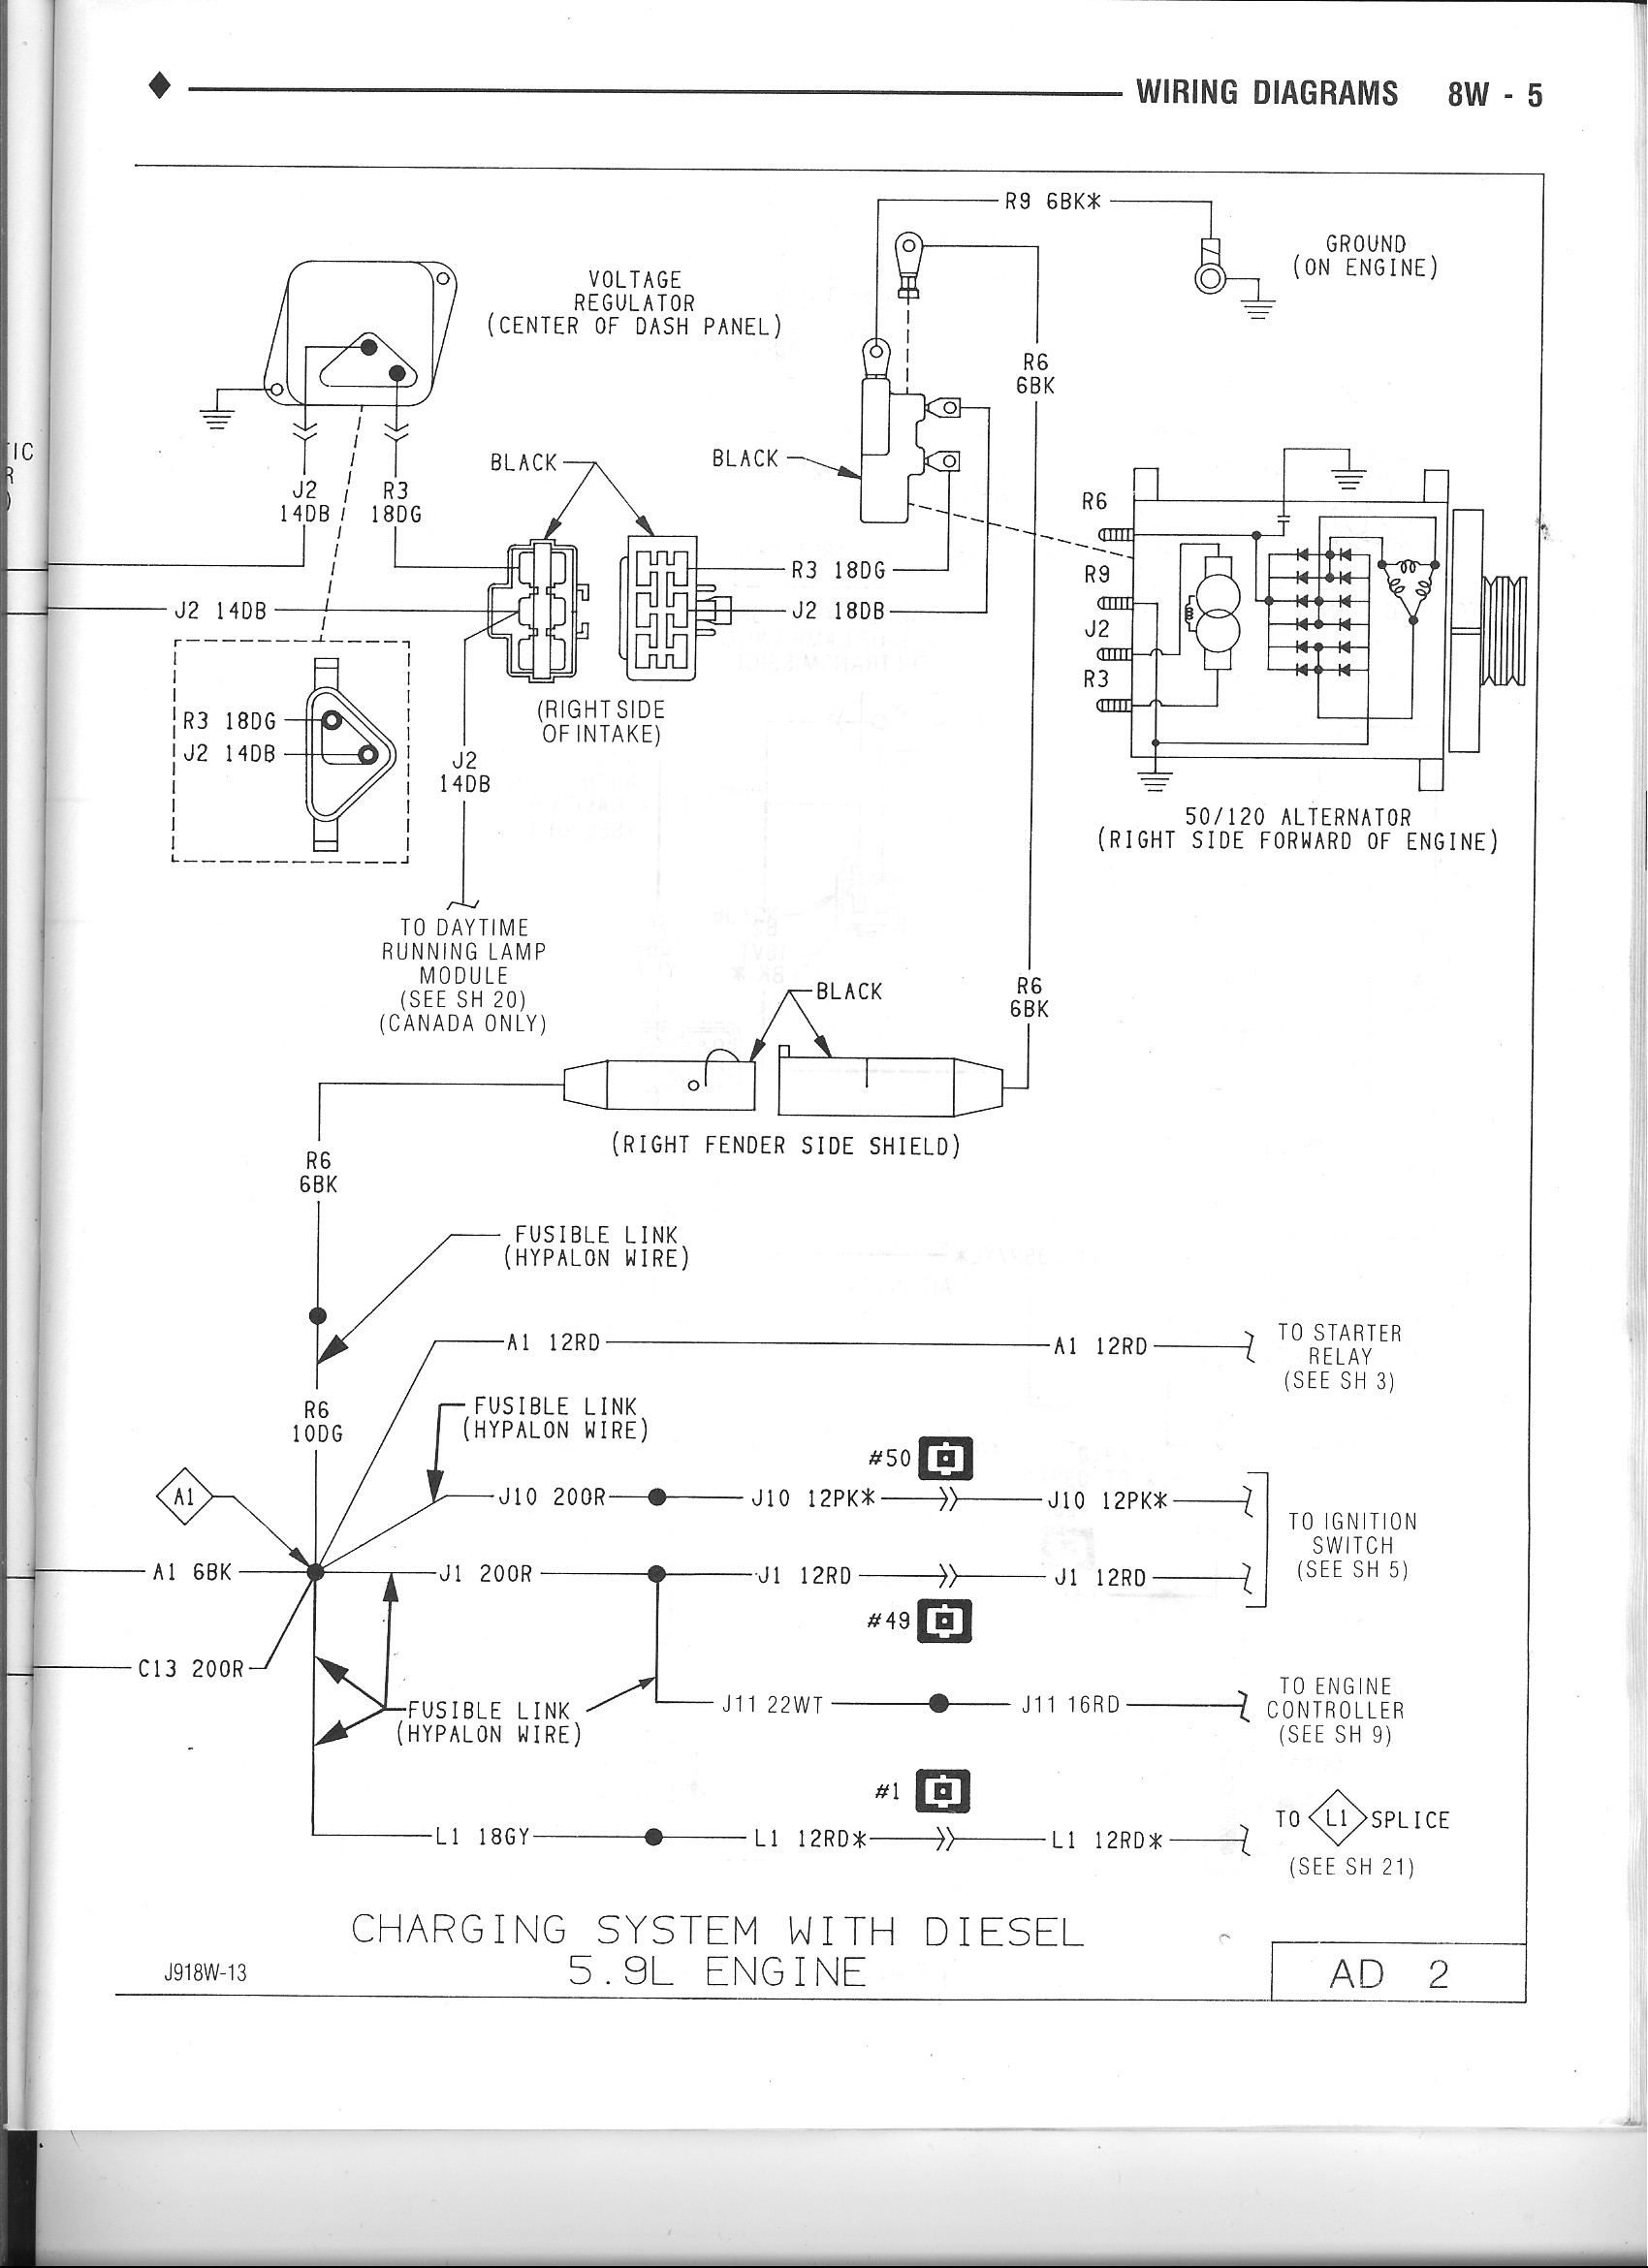 Alternator 101 Dodge Diesel Diesel Truck Resource Forums Mopar Alternator  Wiring Diagram 1990 Dodge Alternator Wiring